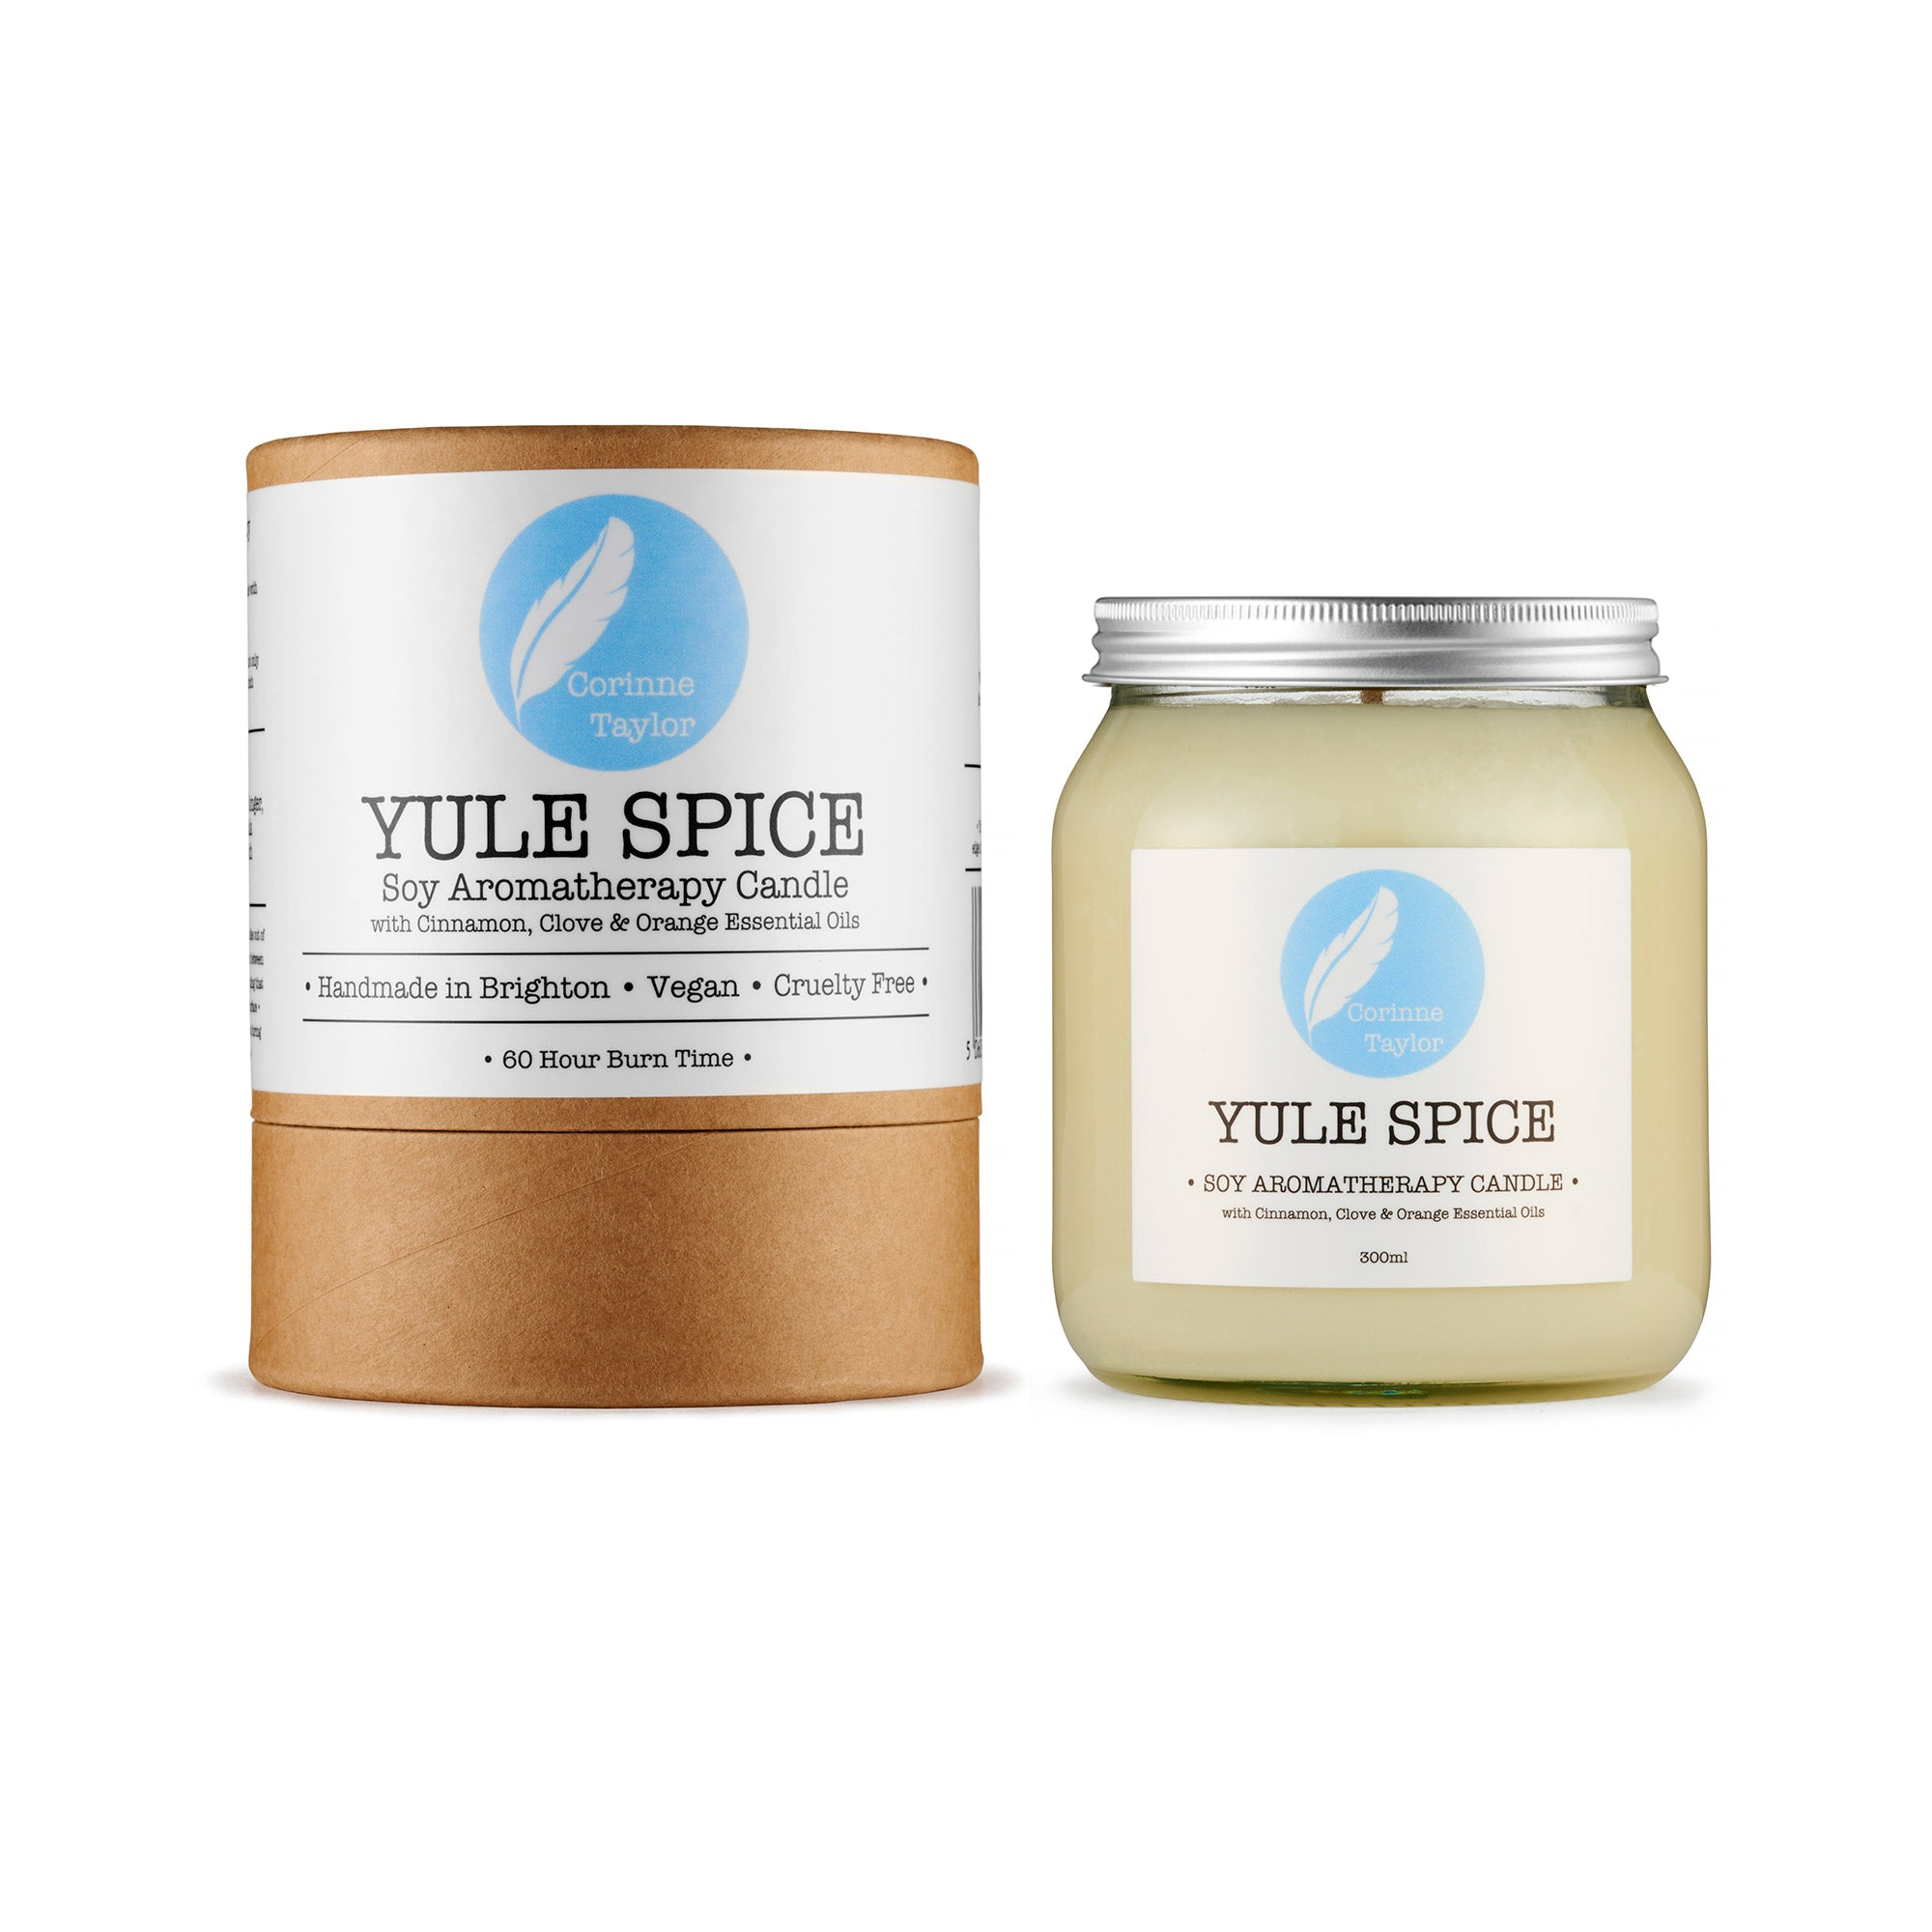 Yule Spice Soy Aromatherapy Christmas Candle by Corinne Taylor. Vegan, cruelty free, 100% natural and made with cinnamon, Clove and Orange essential oils.